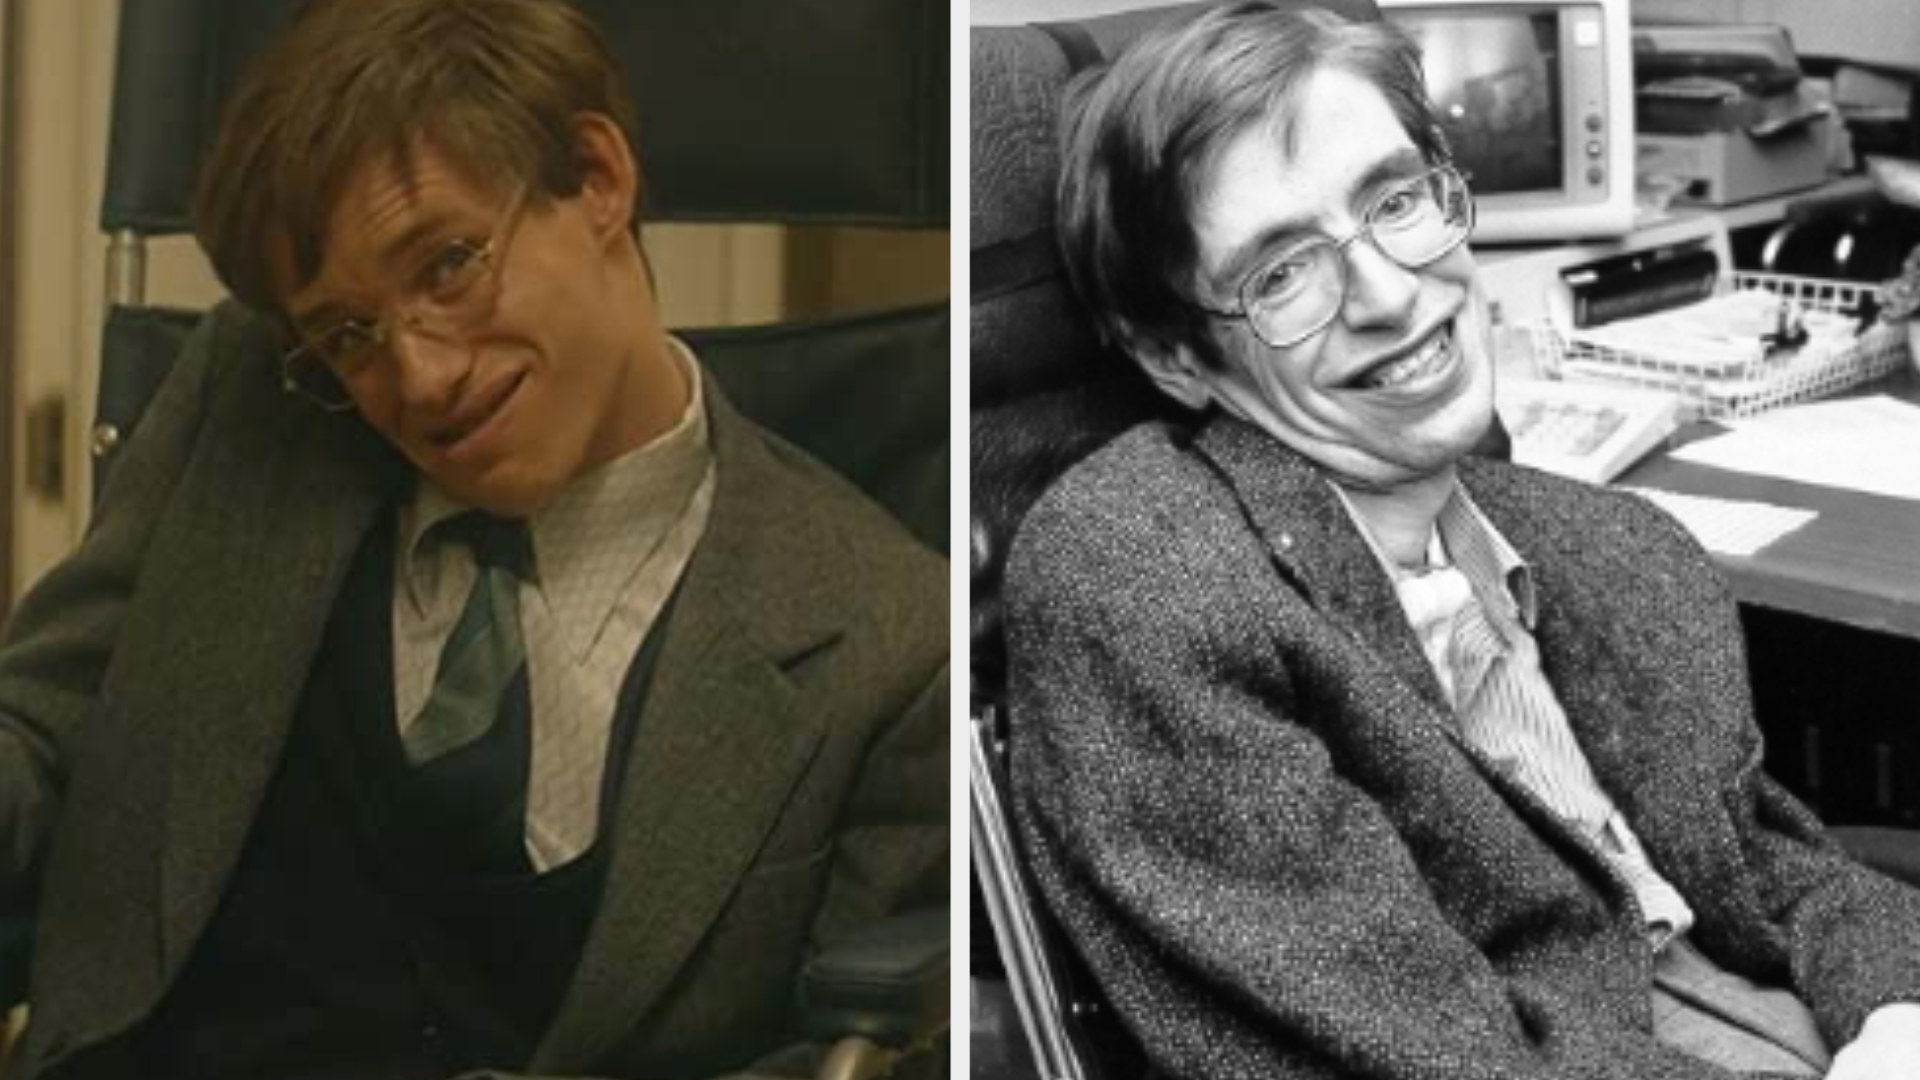 Eddie Redmayne as Stephen Hawking, sitting in a wheelchair because of his diagnosis of ALS, wearing square glasses and a suit; Stephen Hawking sitting in a wheel chair because of his ALS, wearing glasses and a suit with a happy expression